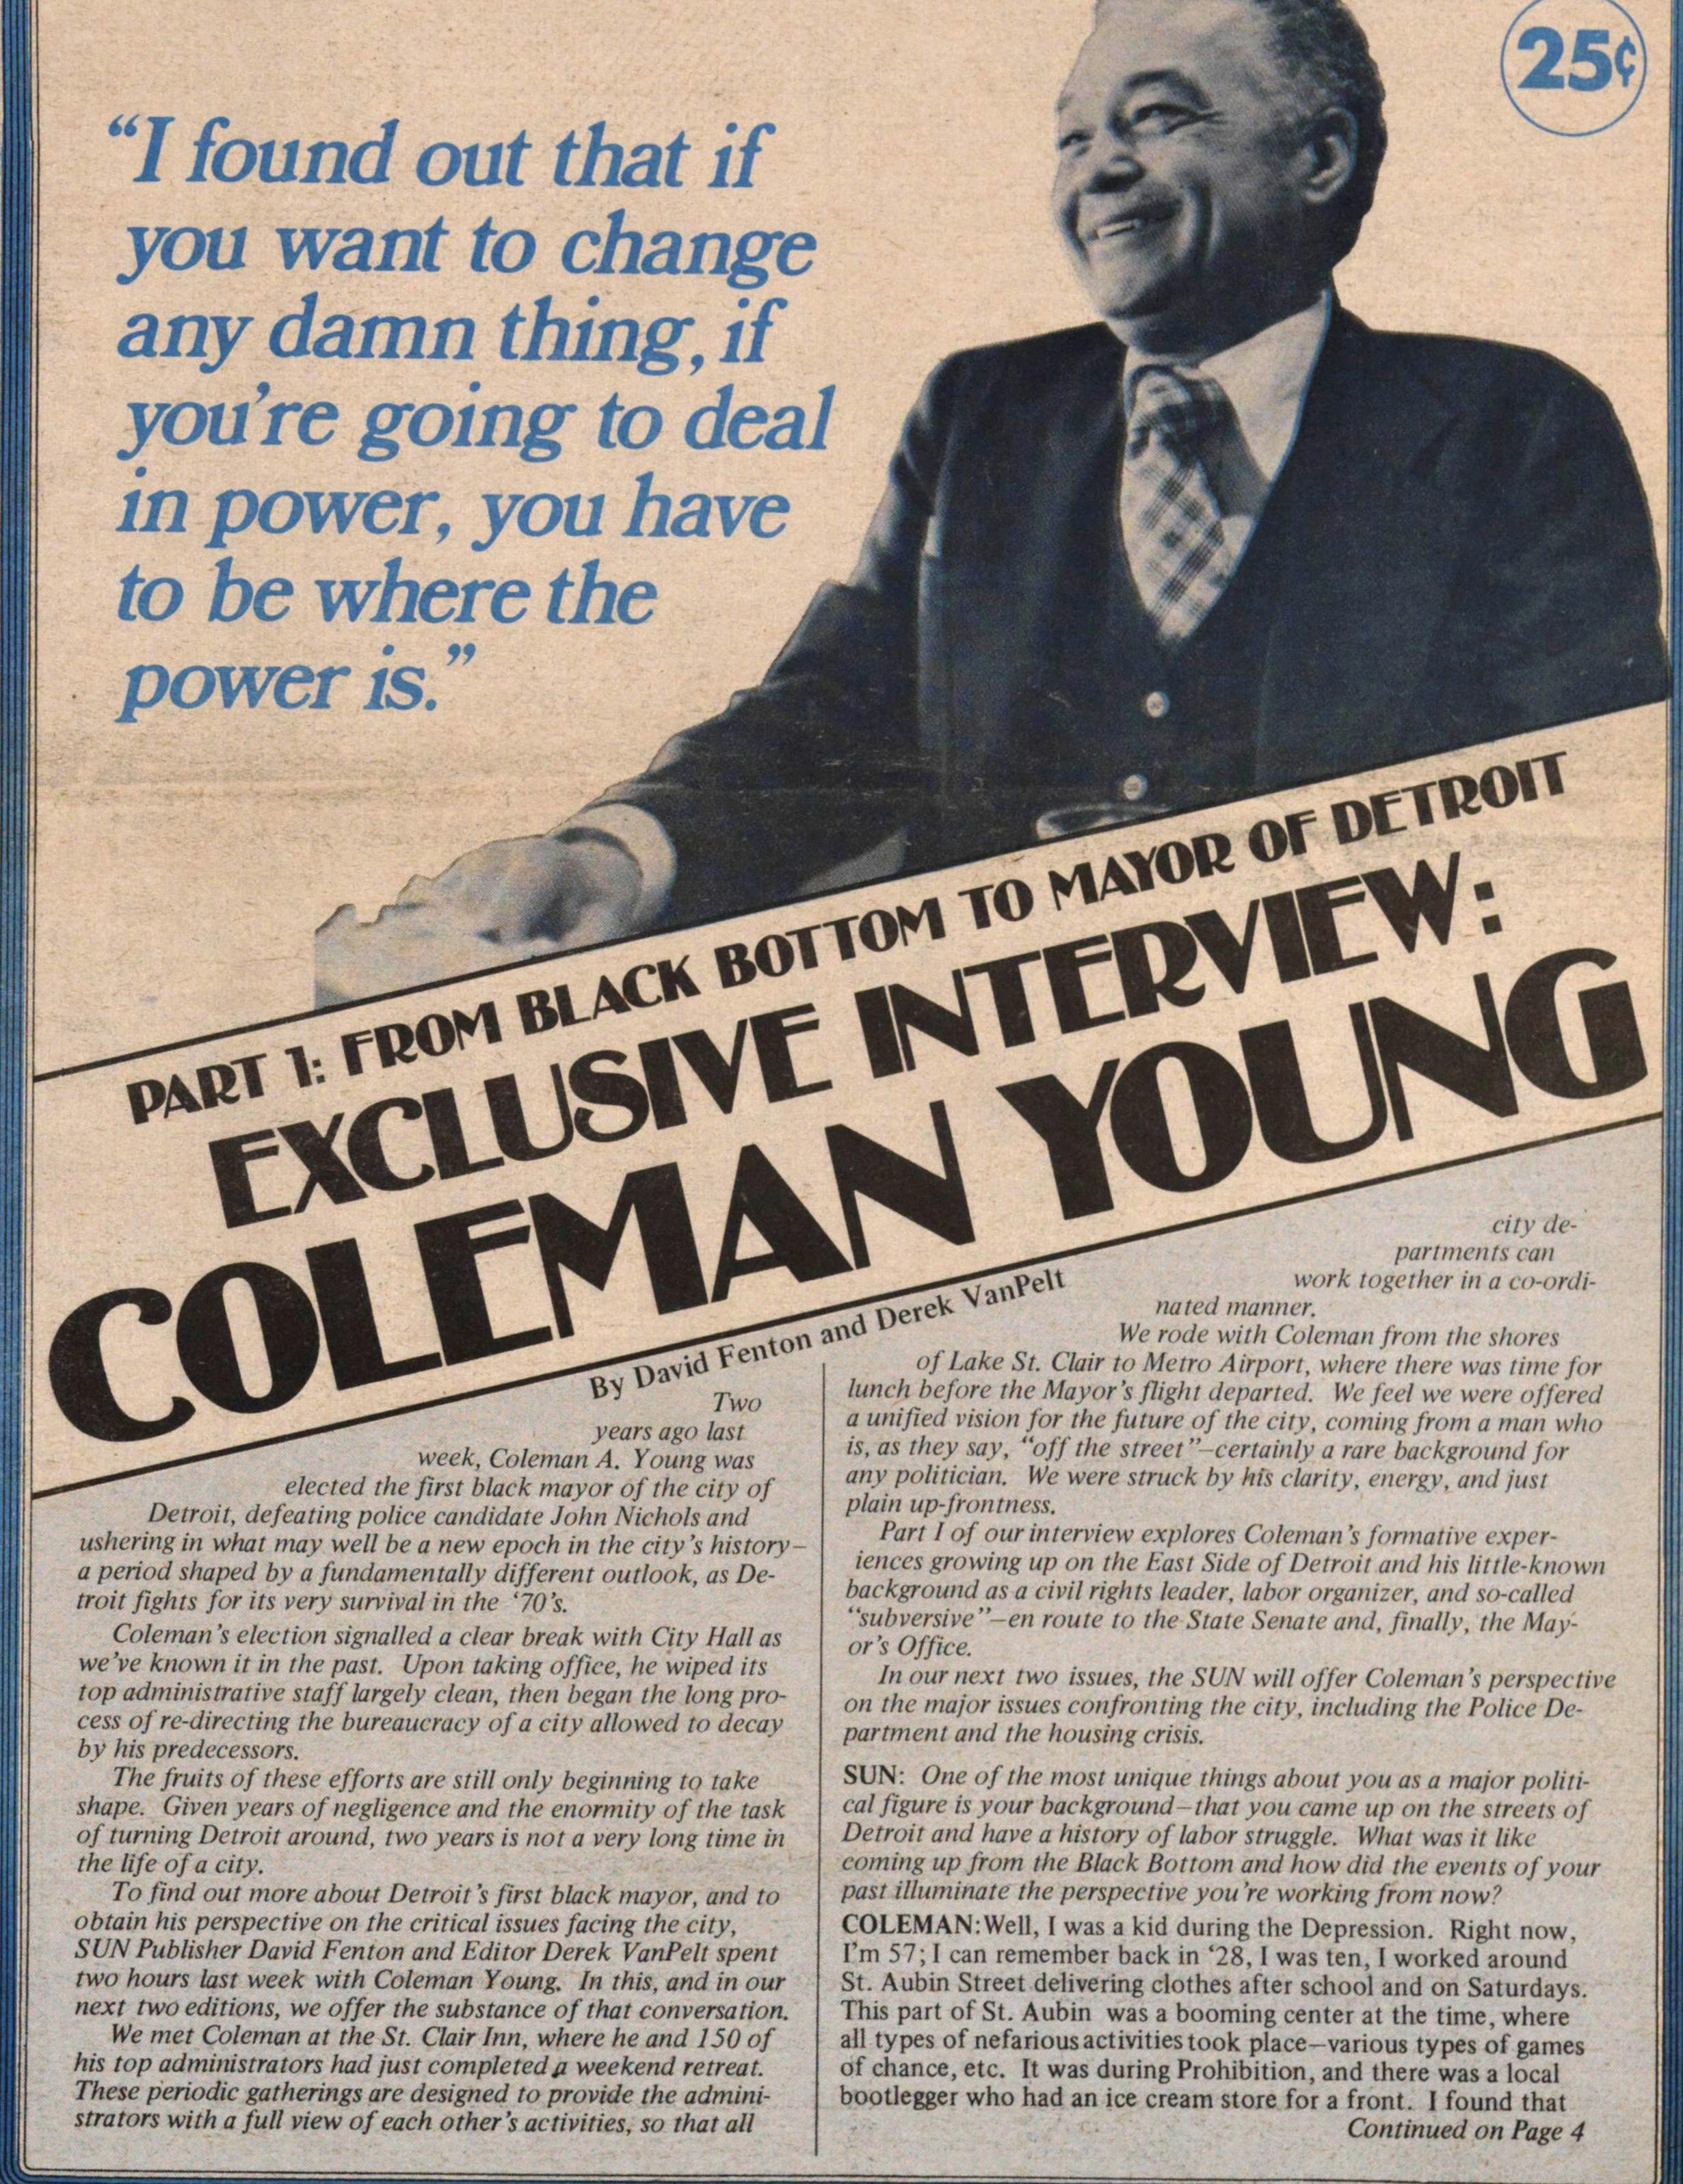 Part 1: From Black Bottom To Mayor Of Detroit Exclusive Interview: Coleman Young image